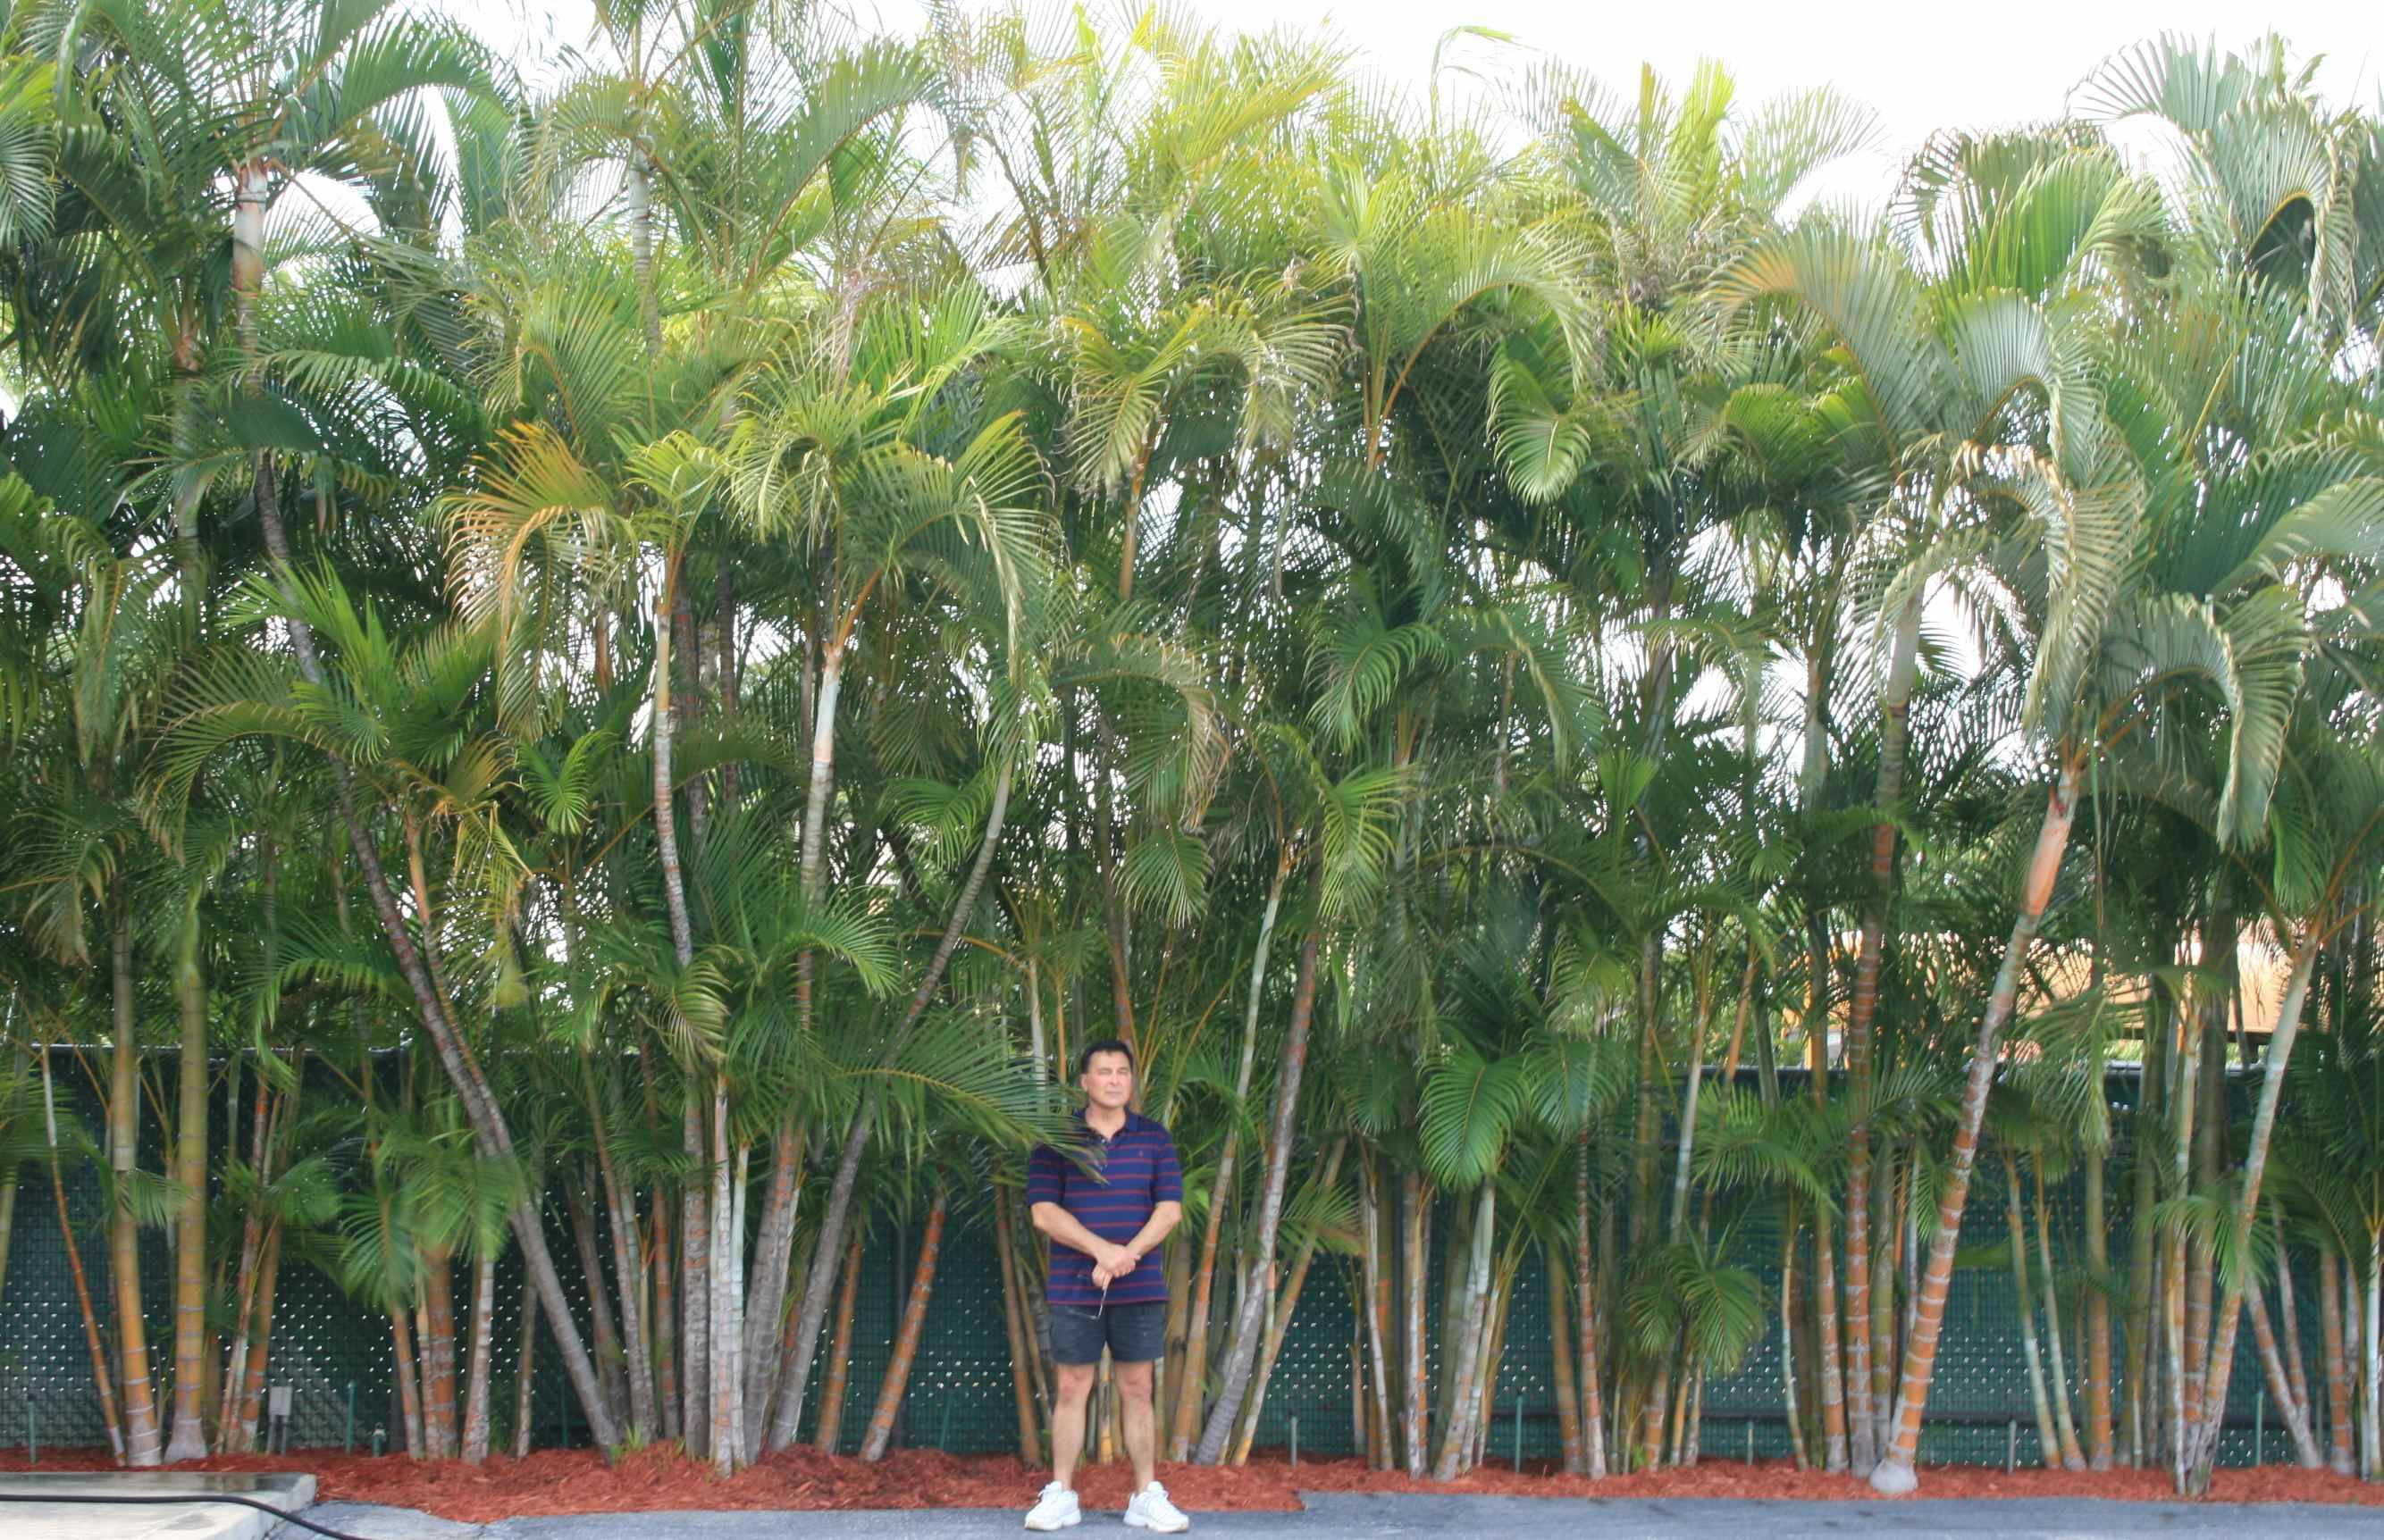 Privacy Palm Areca Palms Palm trees landscaping